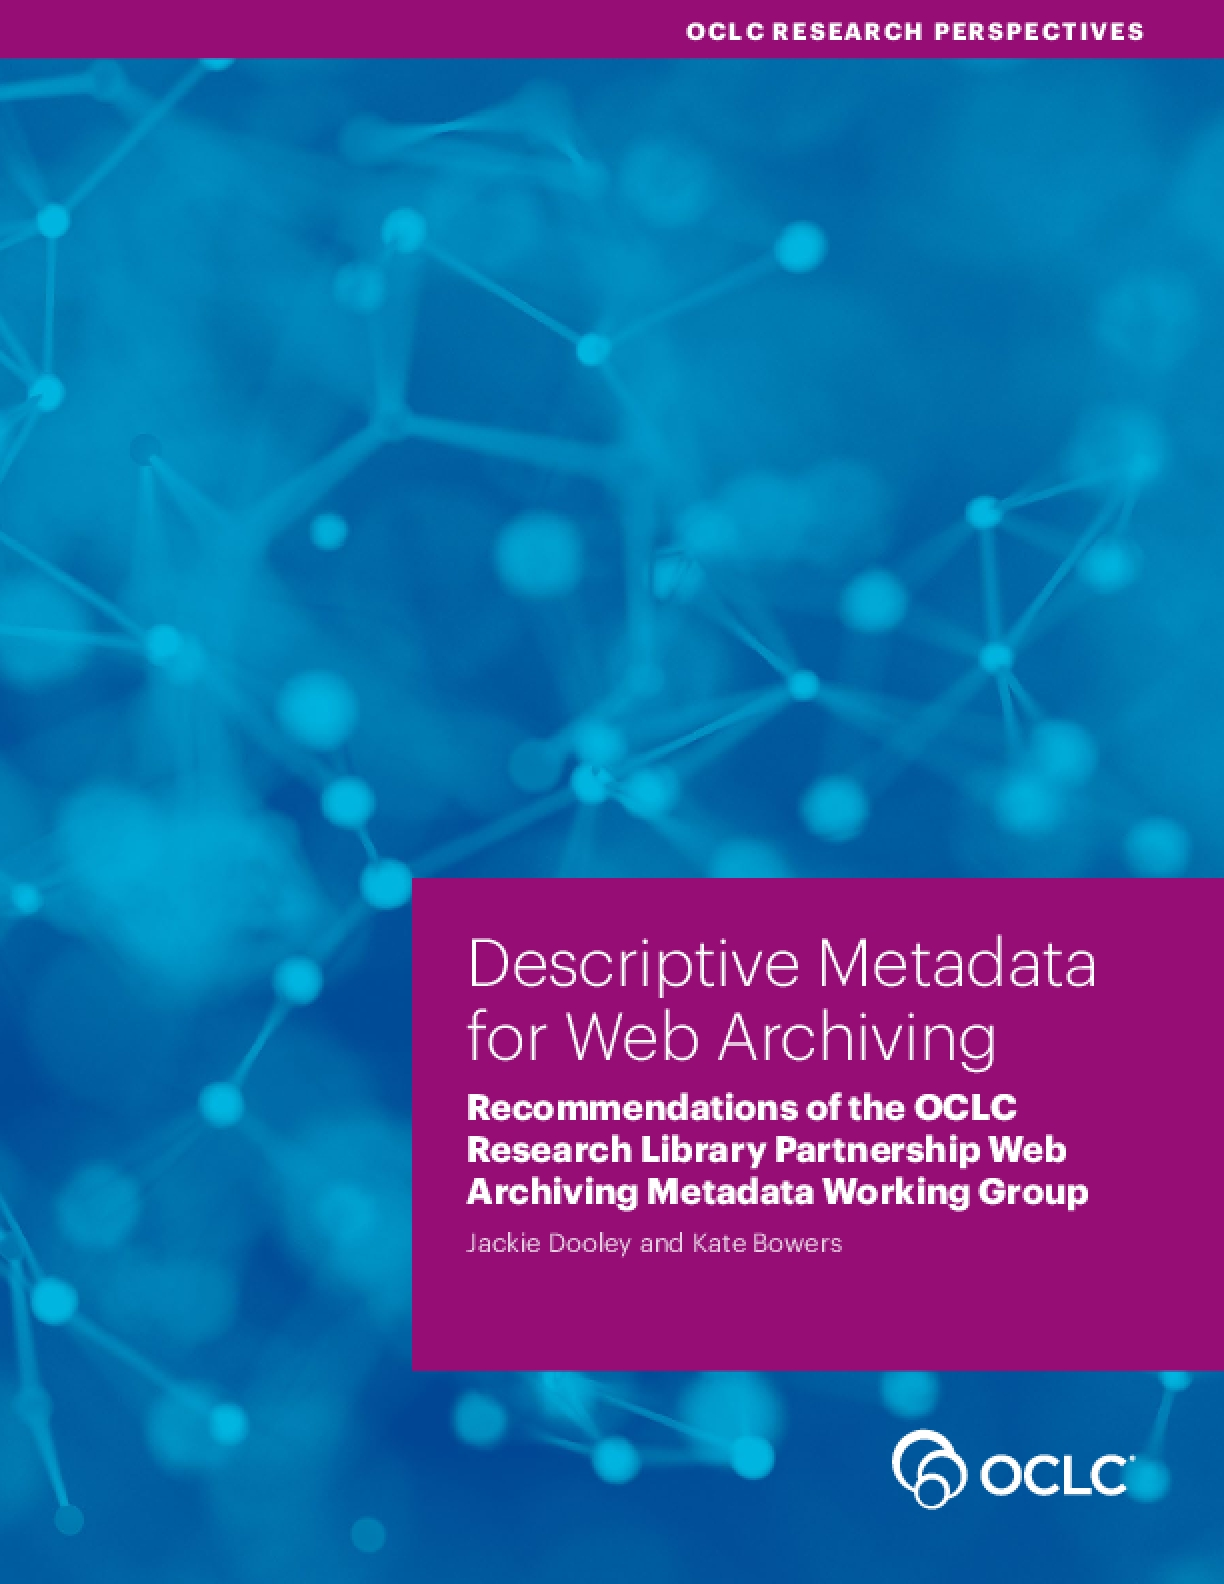 Descriptive Metadata for Web Archiving: Recommendations of the OCLC Research Library Partnership Web Archiving Metadata Working Group